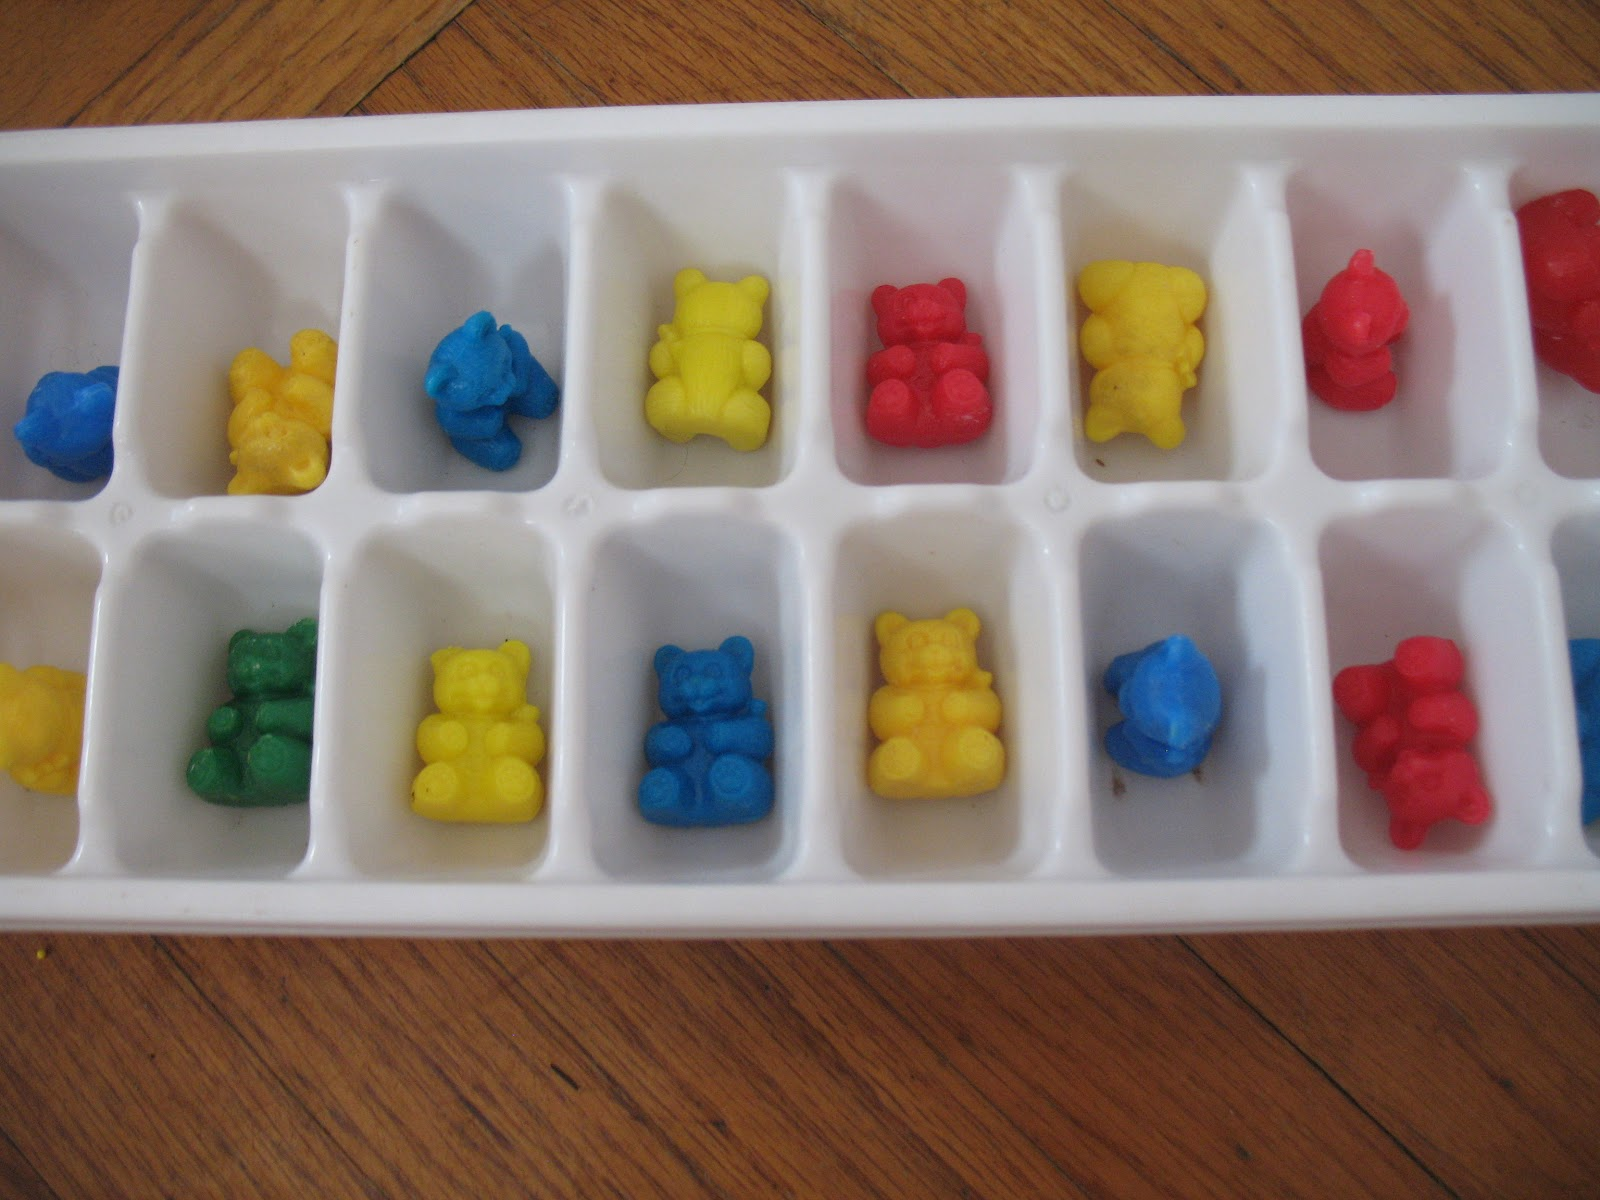 We Can Do All Things Early Learning With Teddy Bear Counters